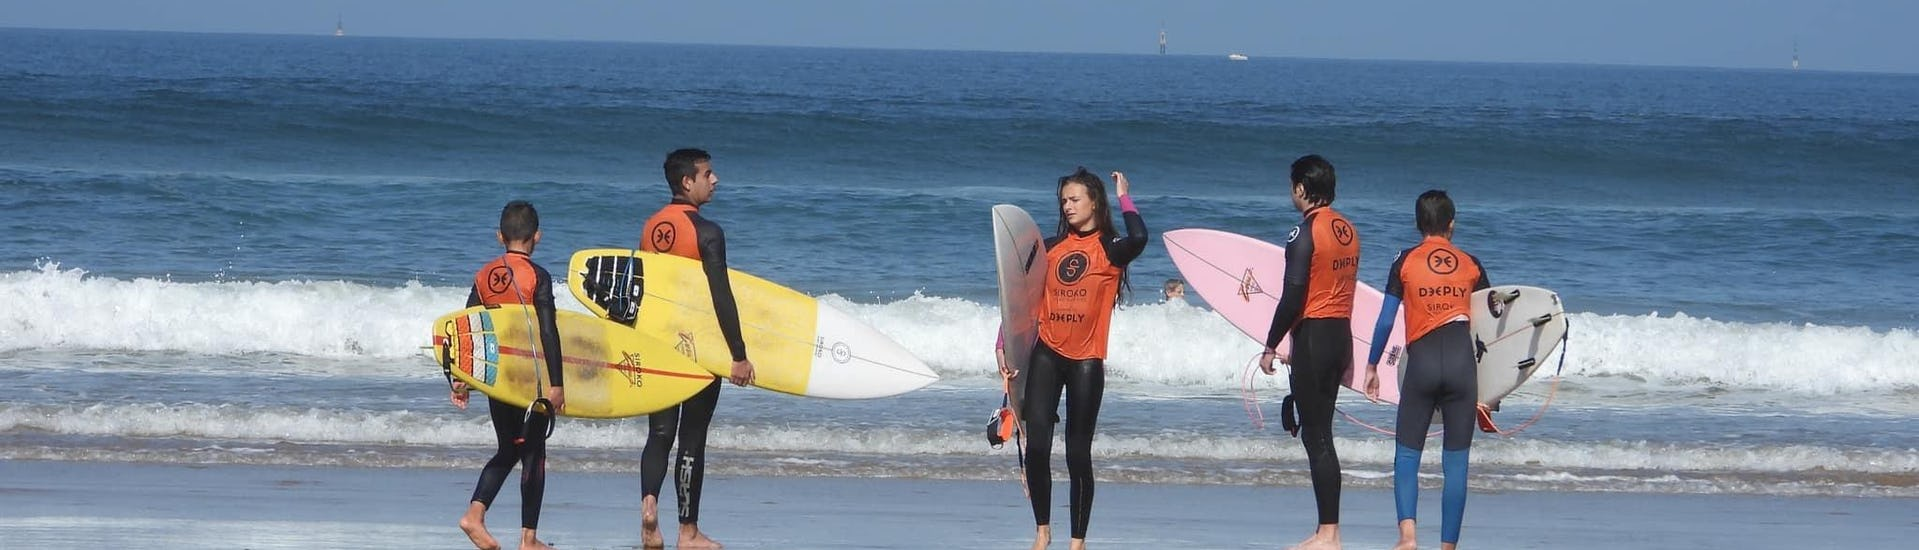 Surfing Lessons for Kids & Adults - Winter - Beginners